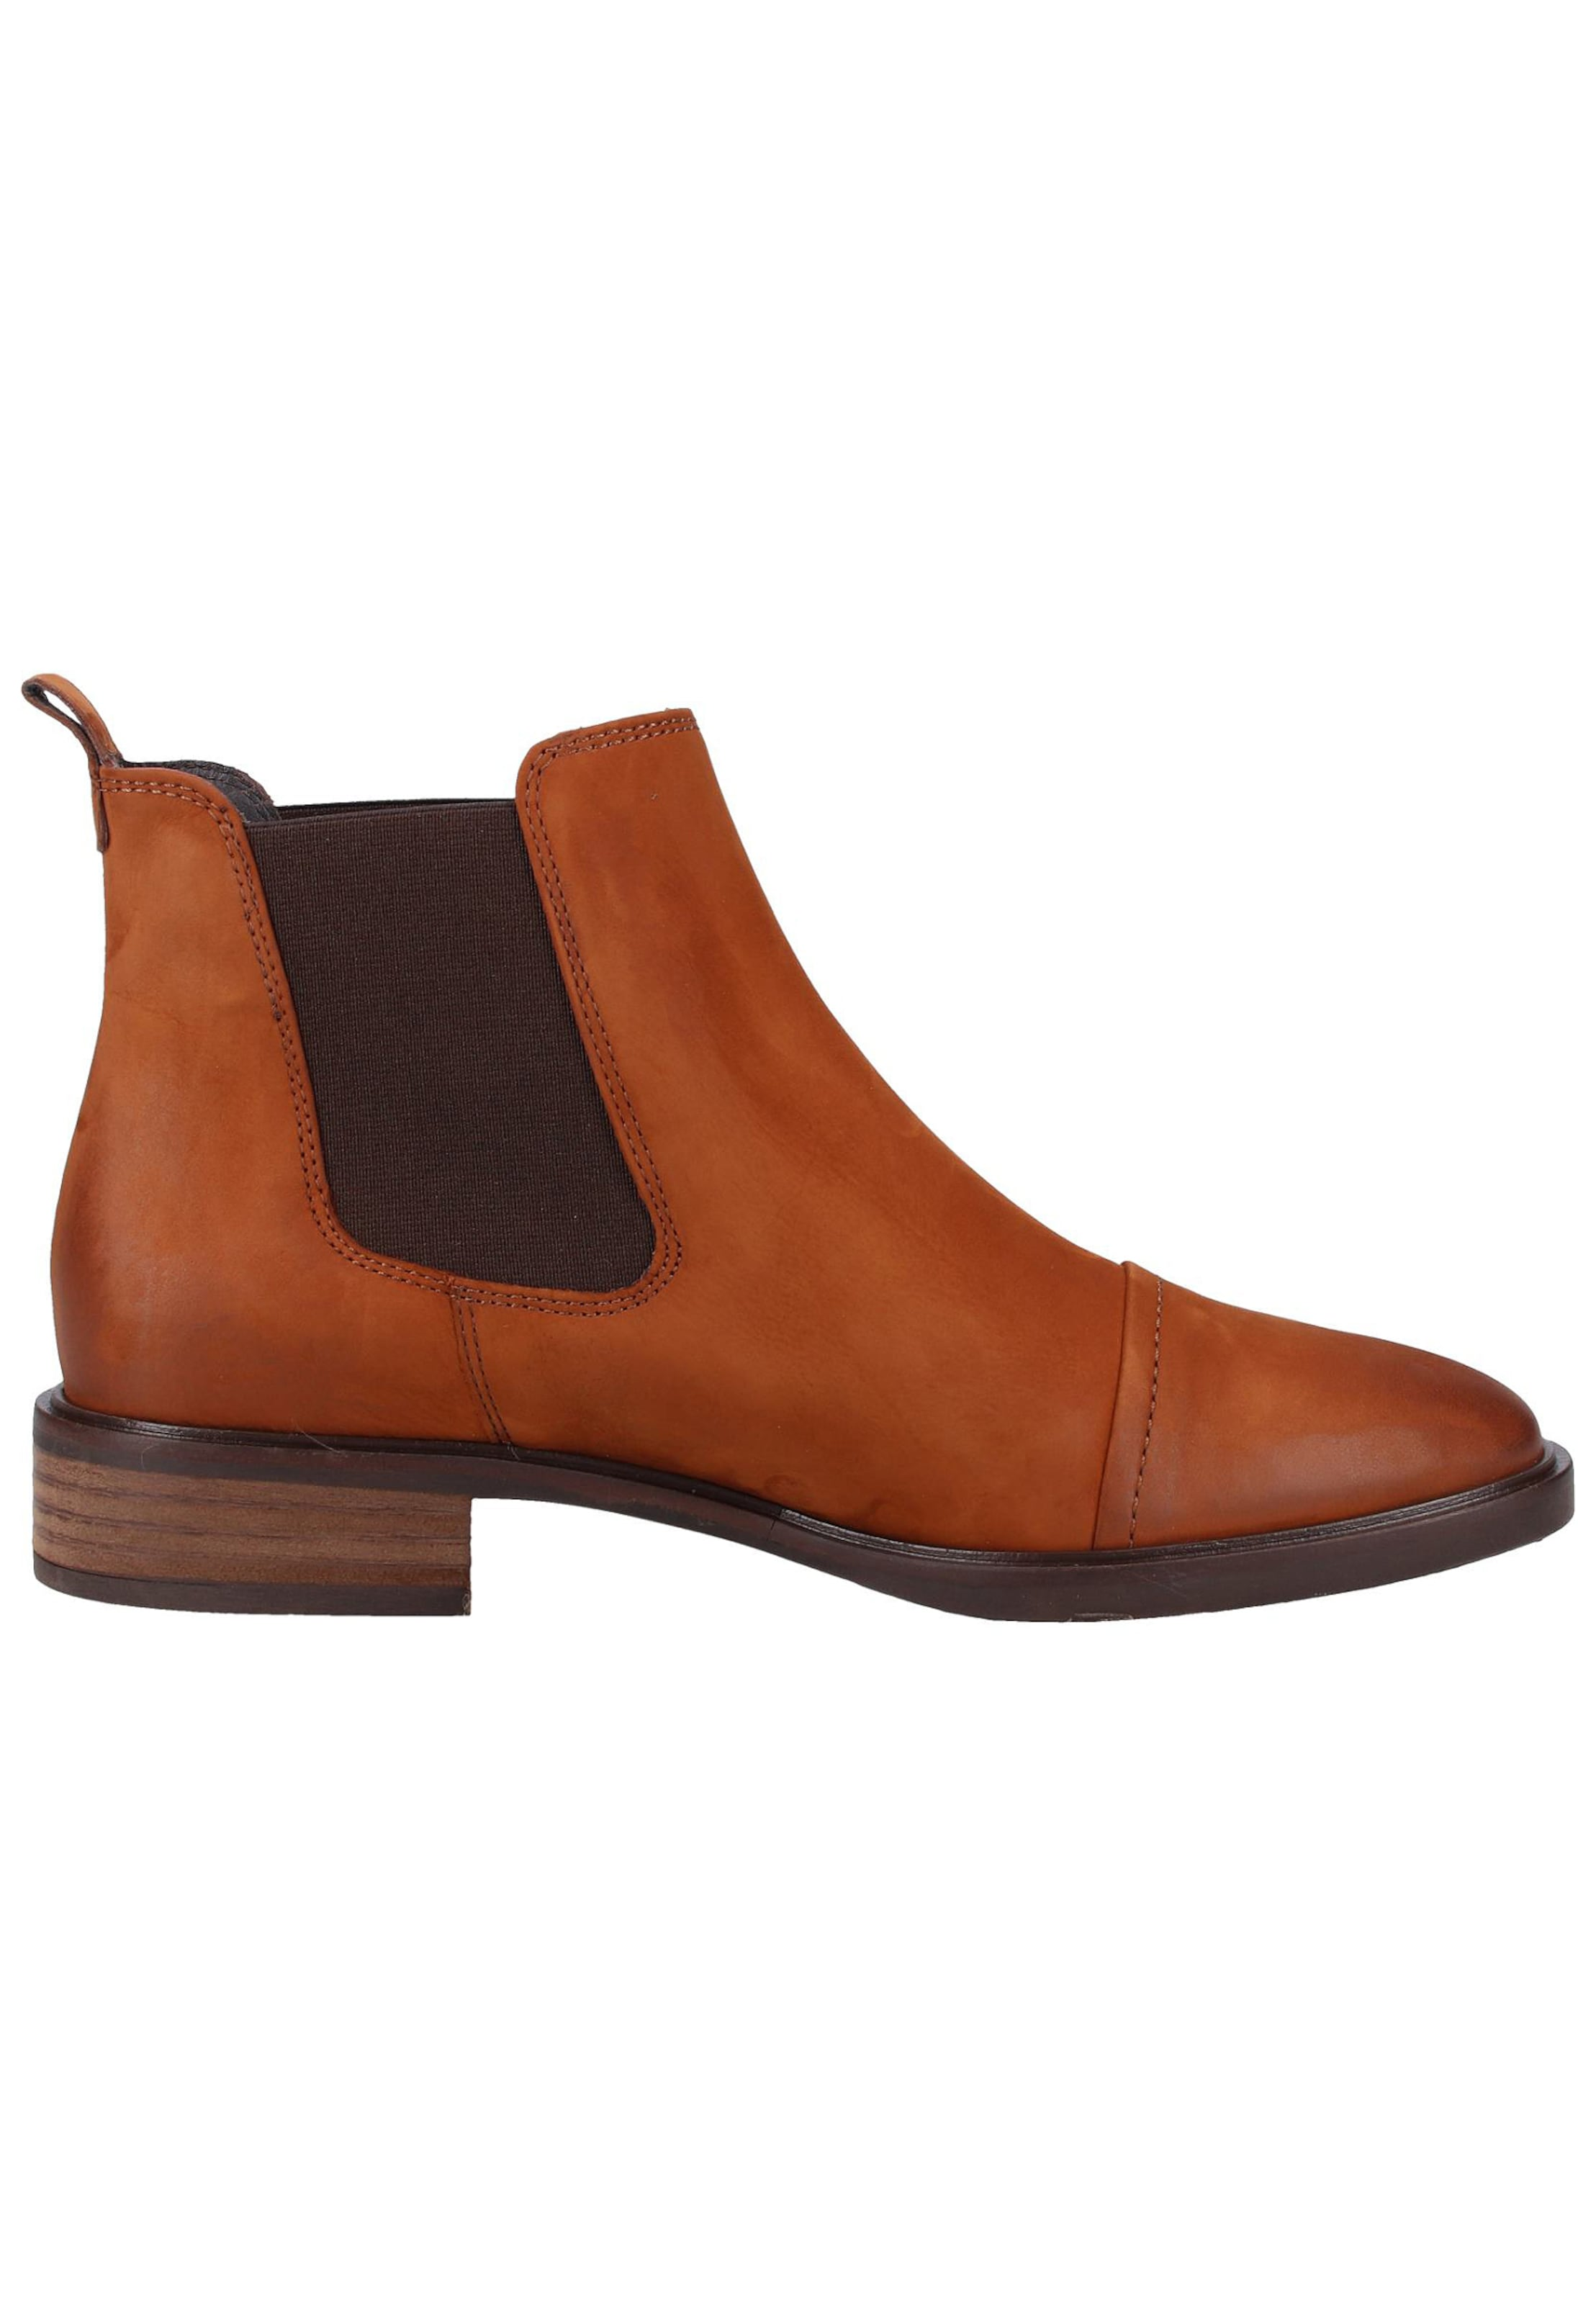 Green En Paul Bottines En Cognac Bottines Cognac Green Paul Paul BdeWxrCo